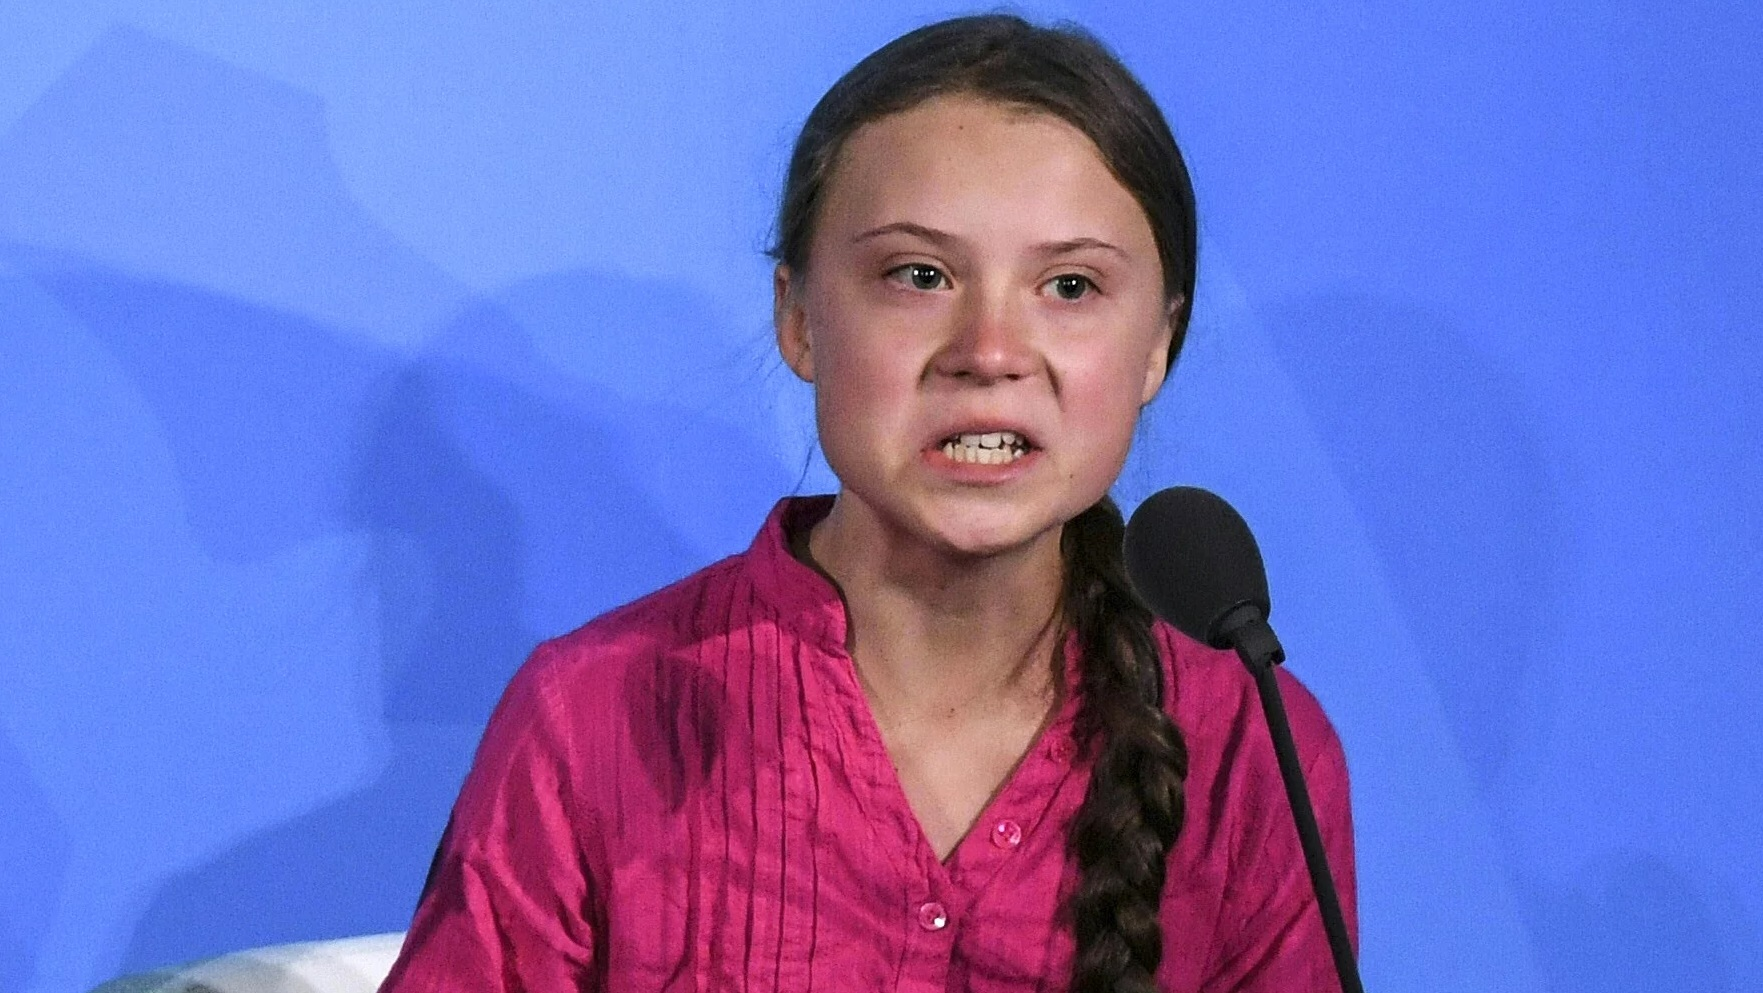 Image: Greta the hysterical climate teen has filed a formal complaint with the U.N. over climate change – who's scripting all this?